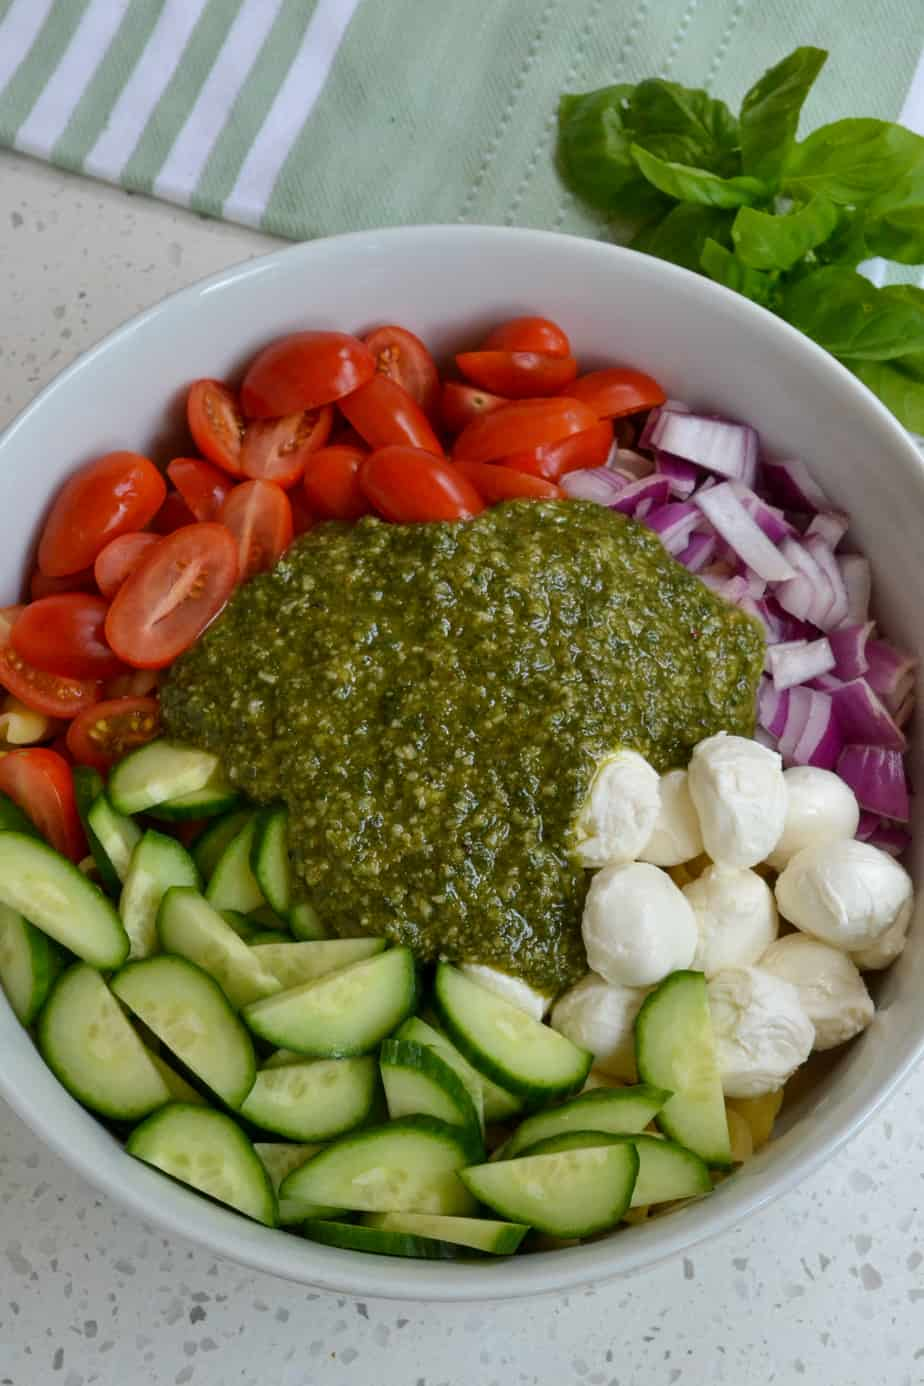 All of the ingredients for the Pesto Pasta Salad in a bowl.